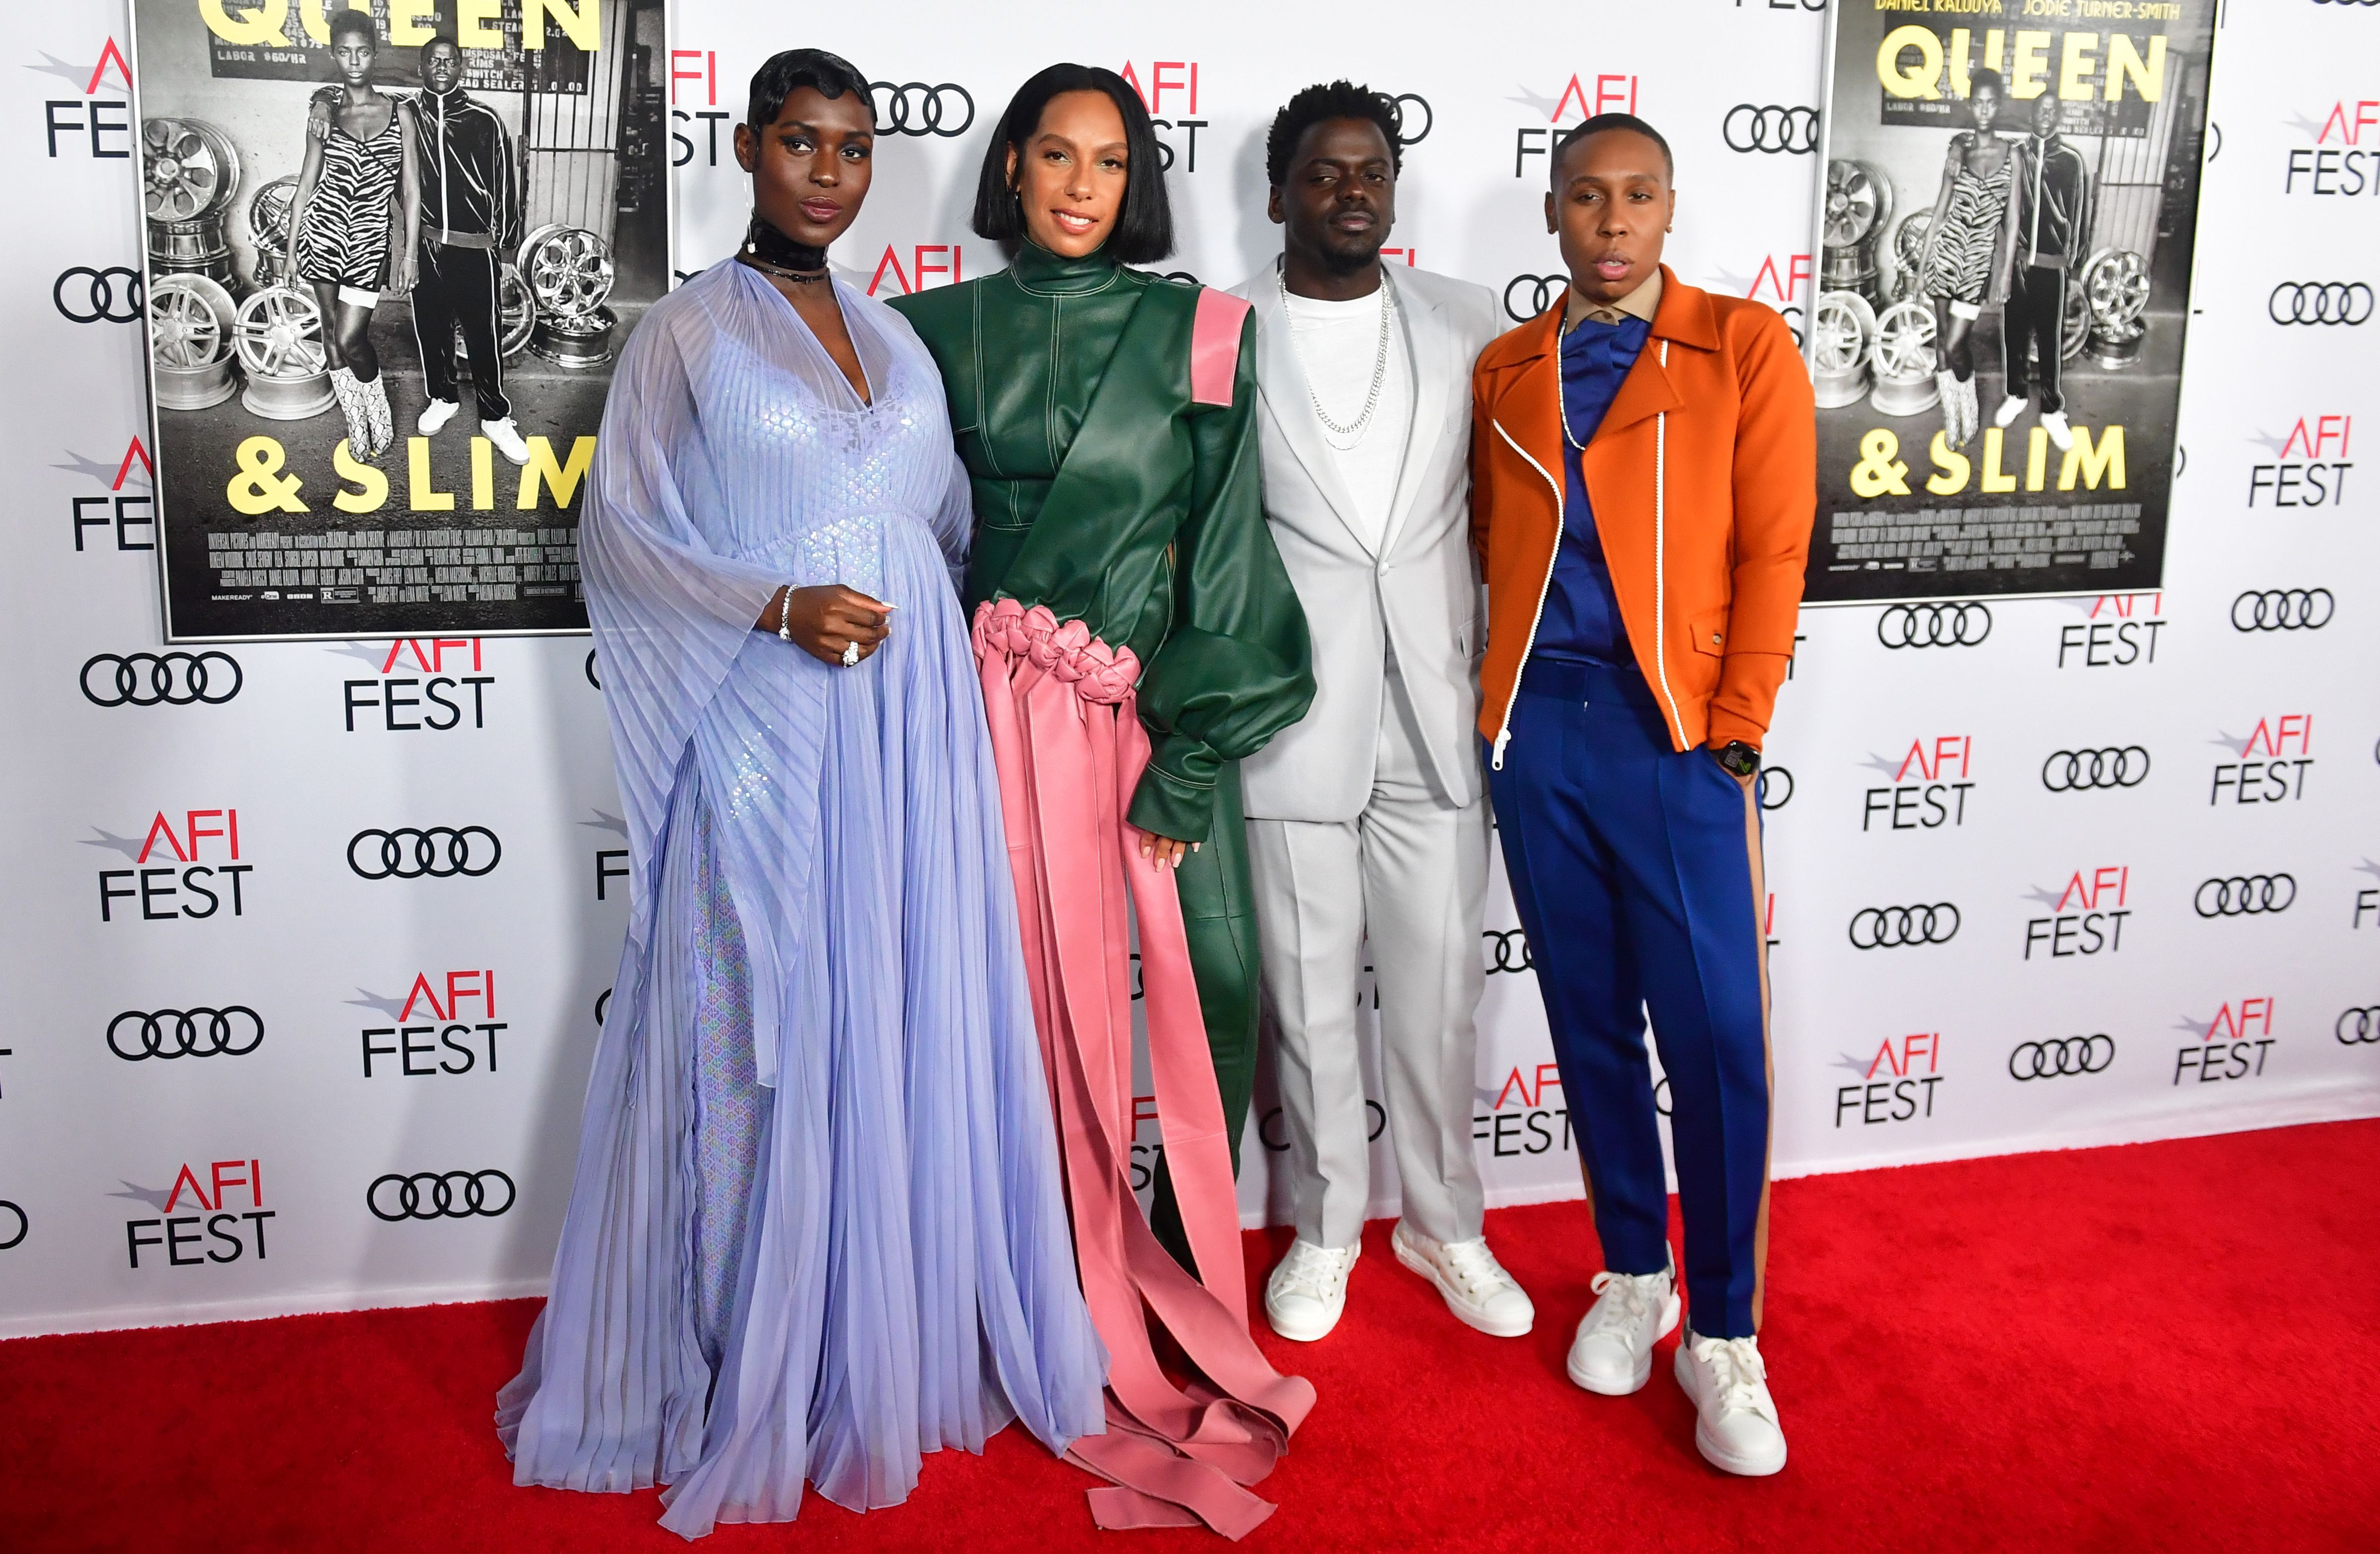 Melina Matsoukas Claims Golden Globe Voters Refused to Watch Queen & Slim